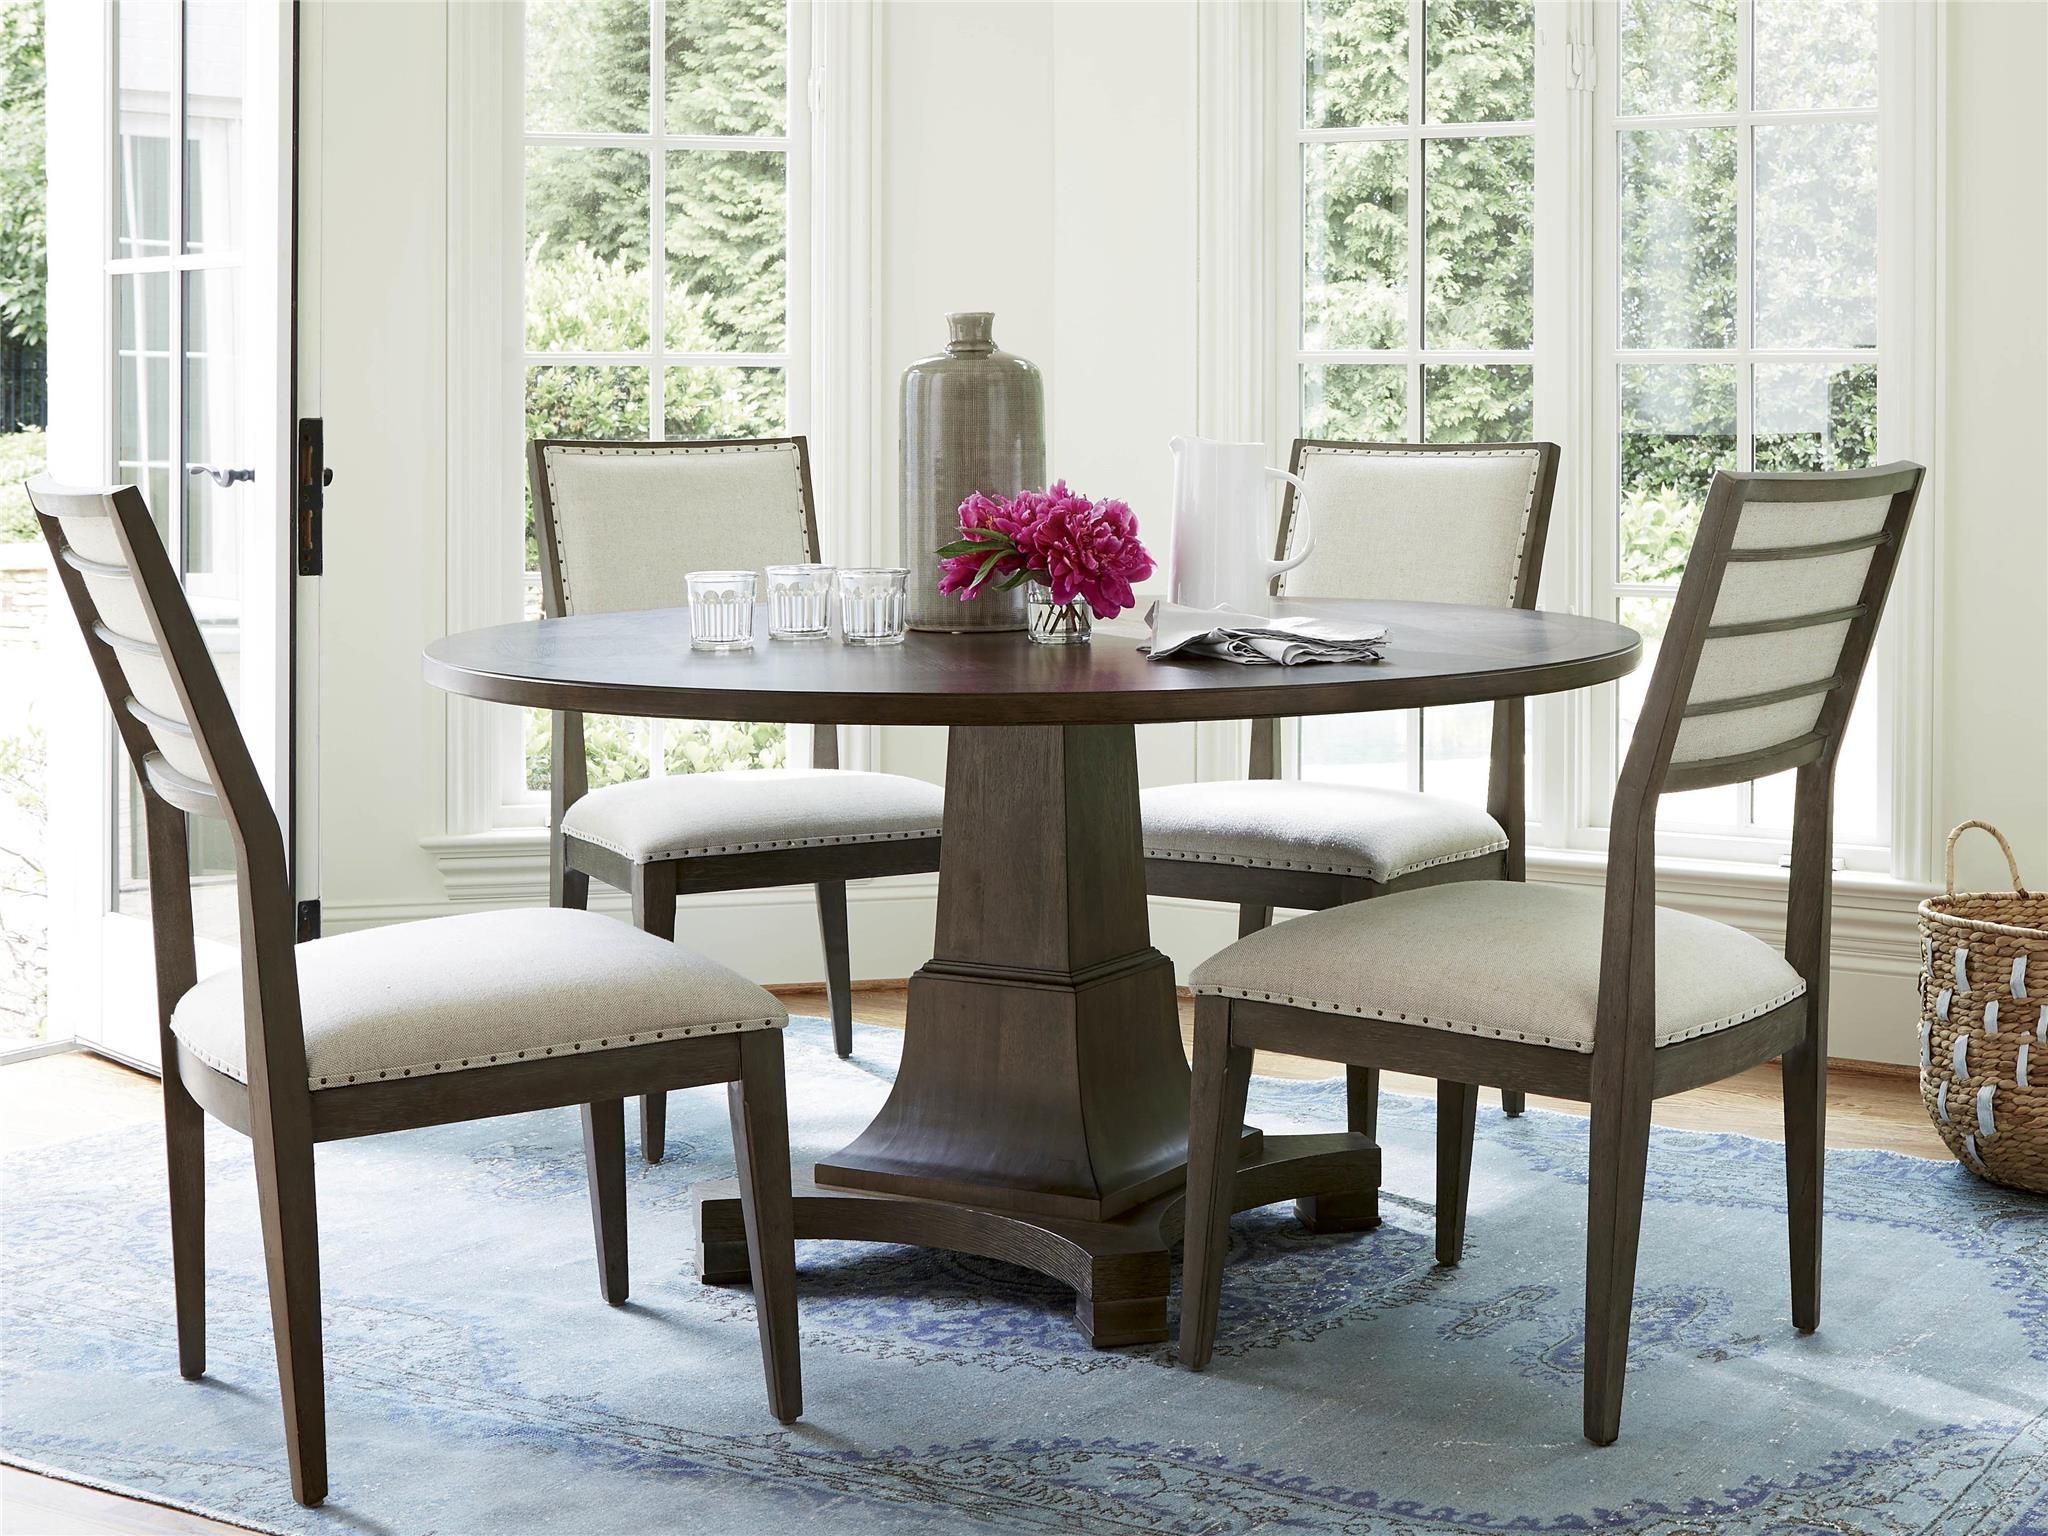 Round dining table and chairs for 4  Universal Furniture  Playlist  Round Dining Table  Playlist